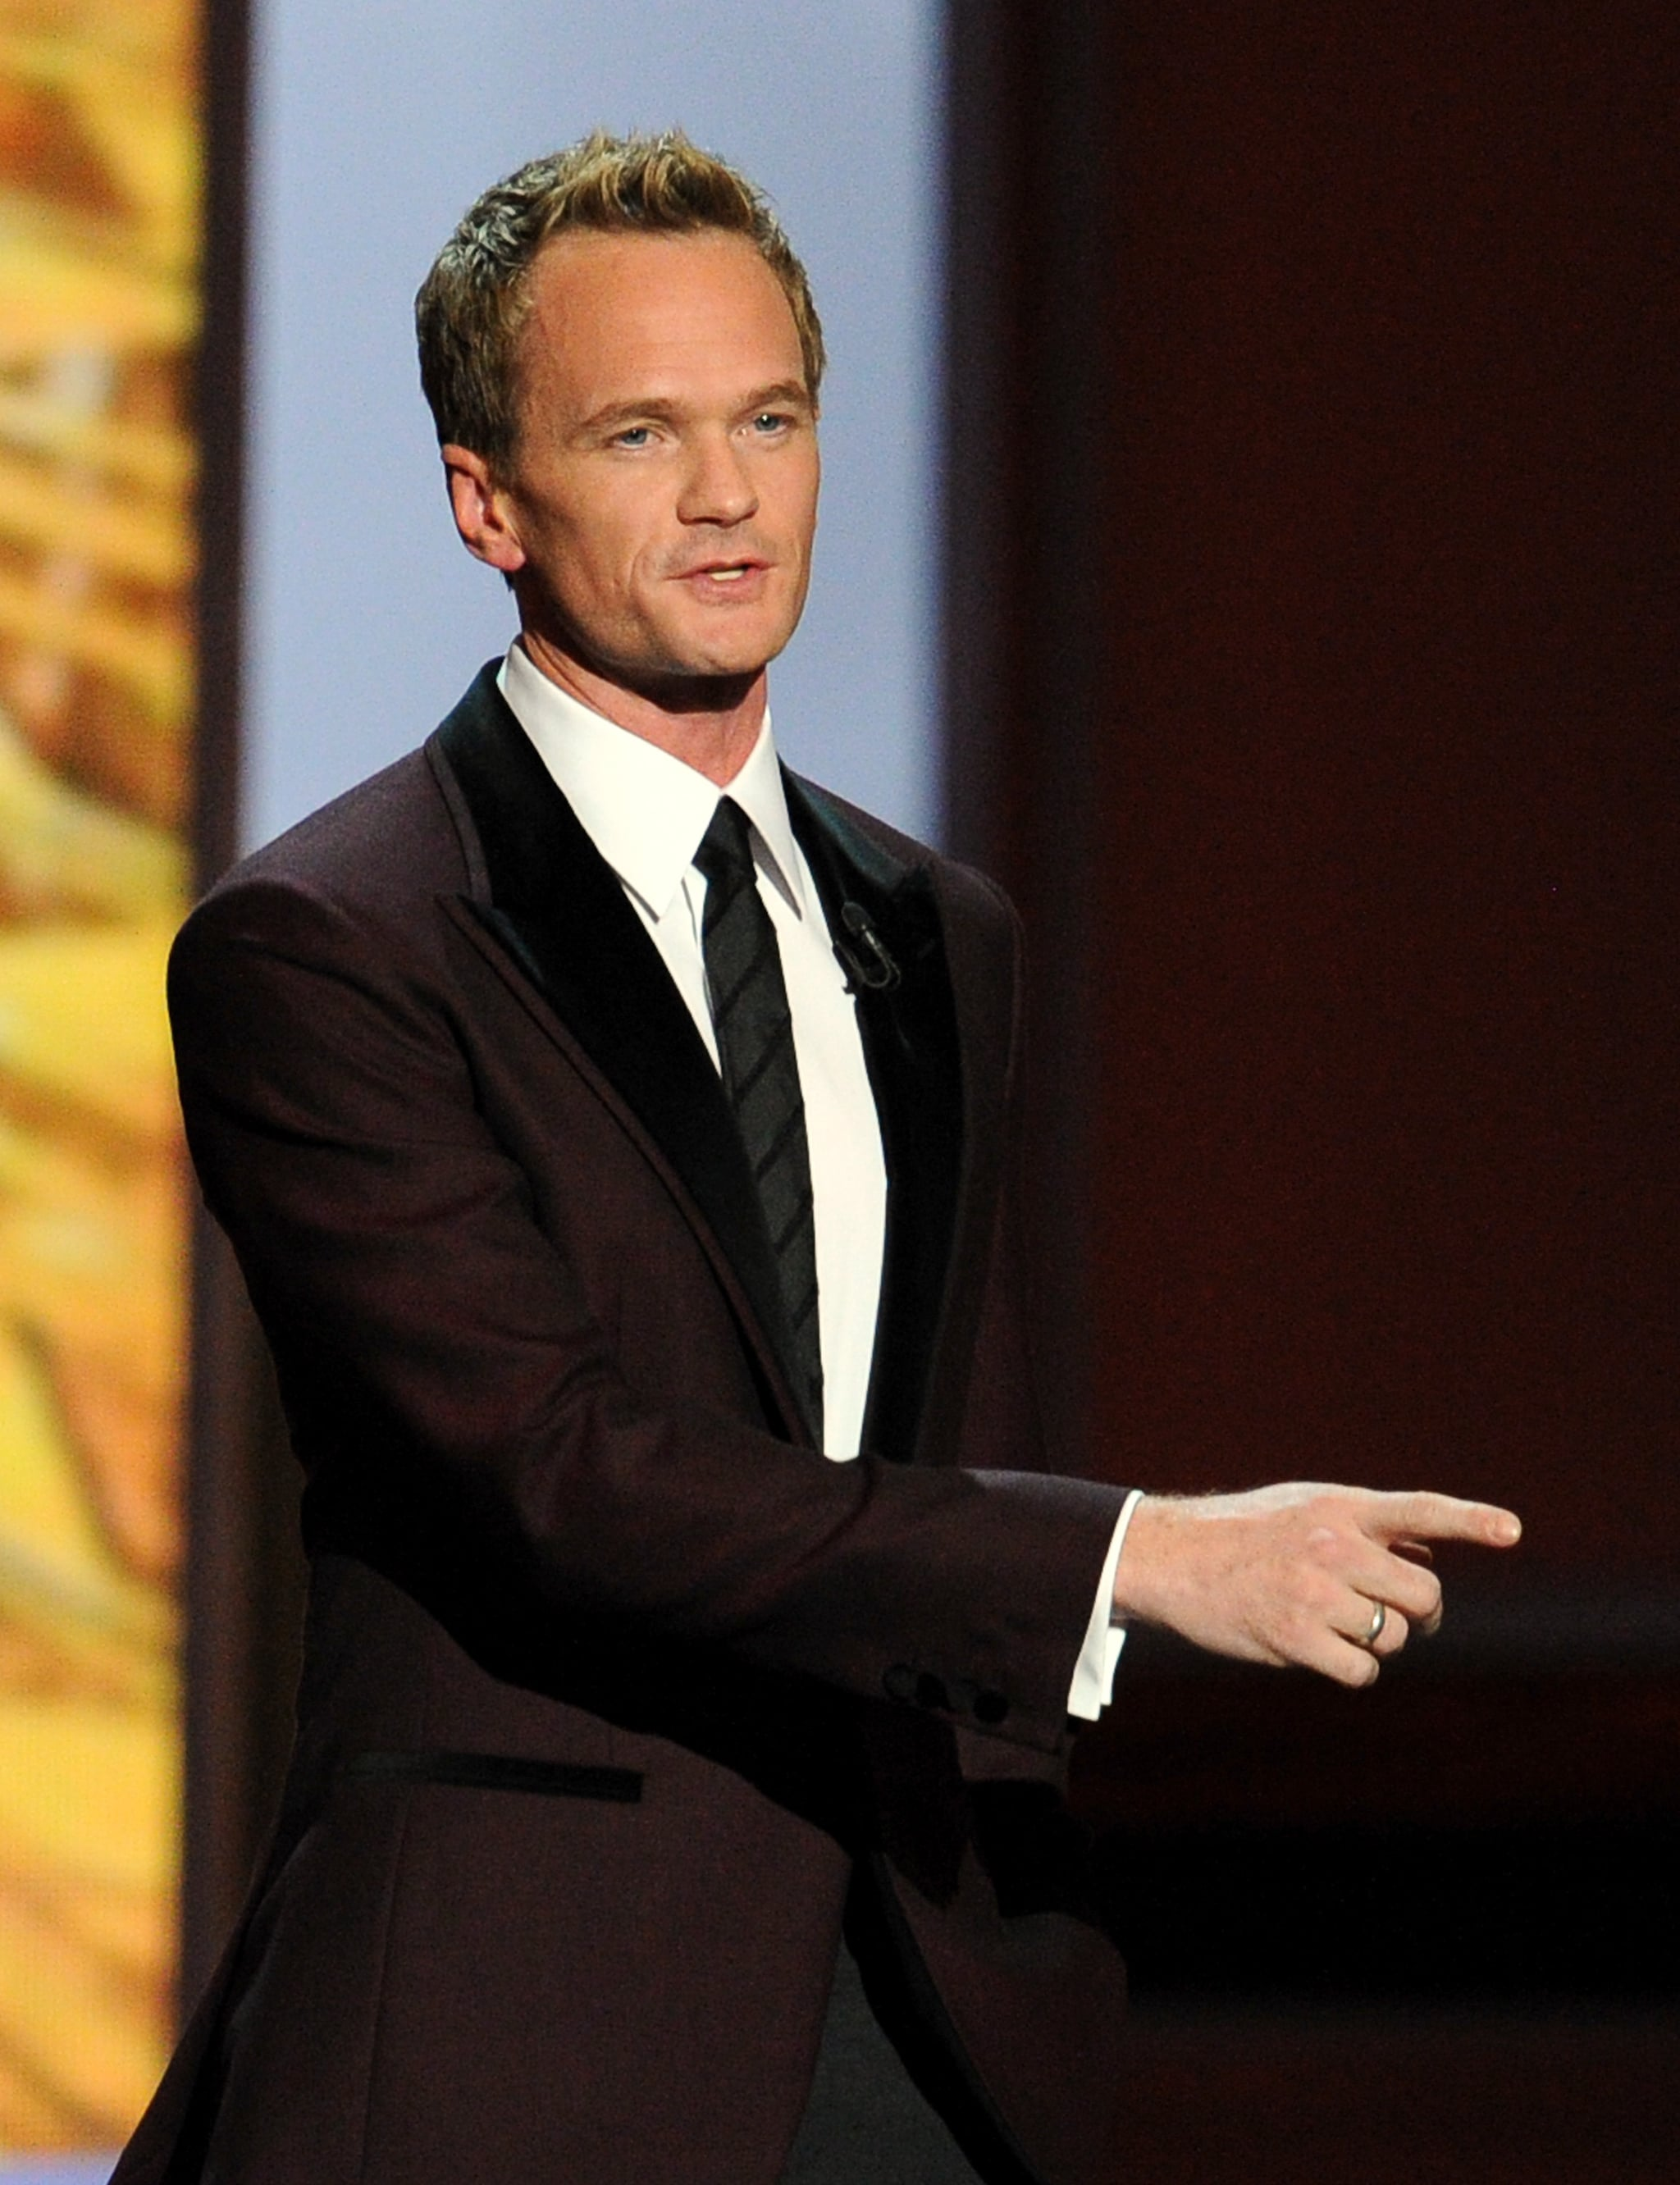 Host Neil Patrick Harris opened the show with a little help from past hosts.